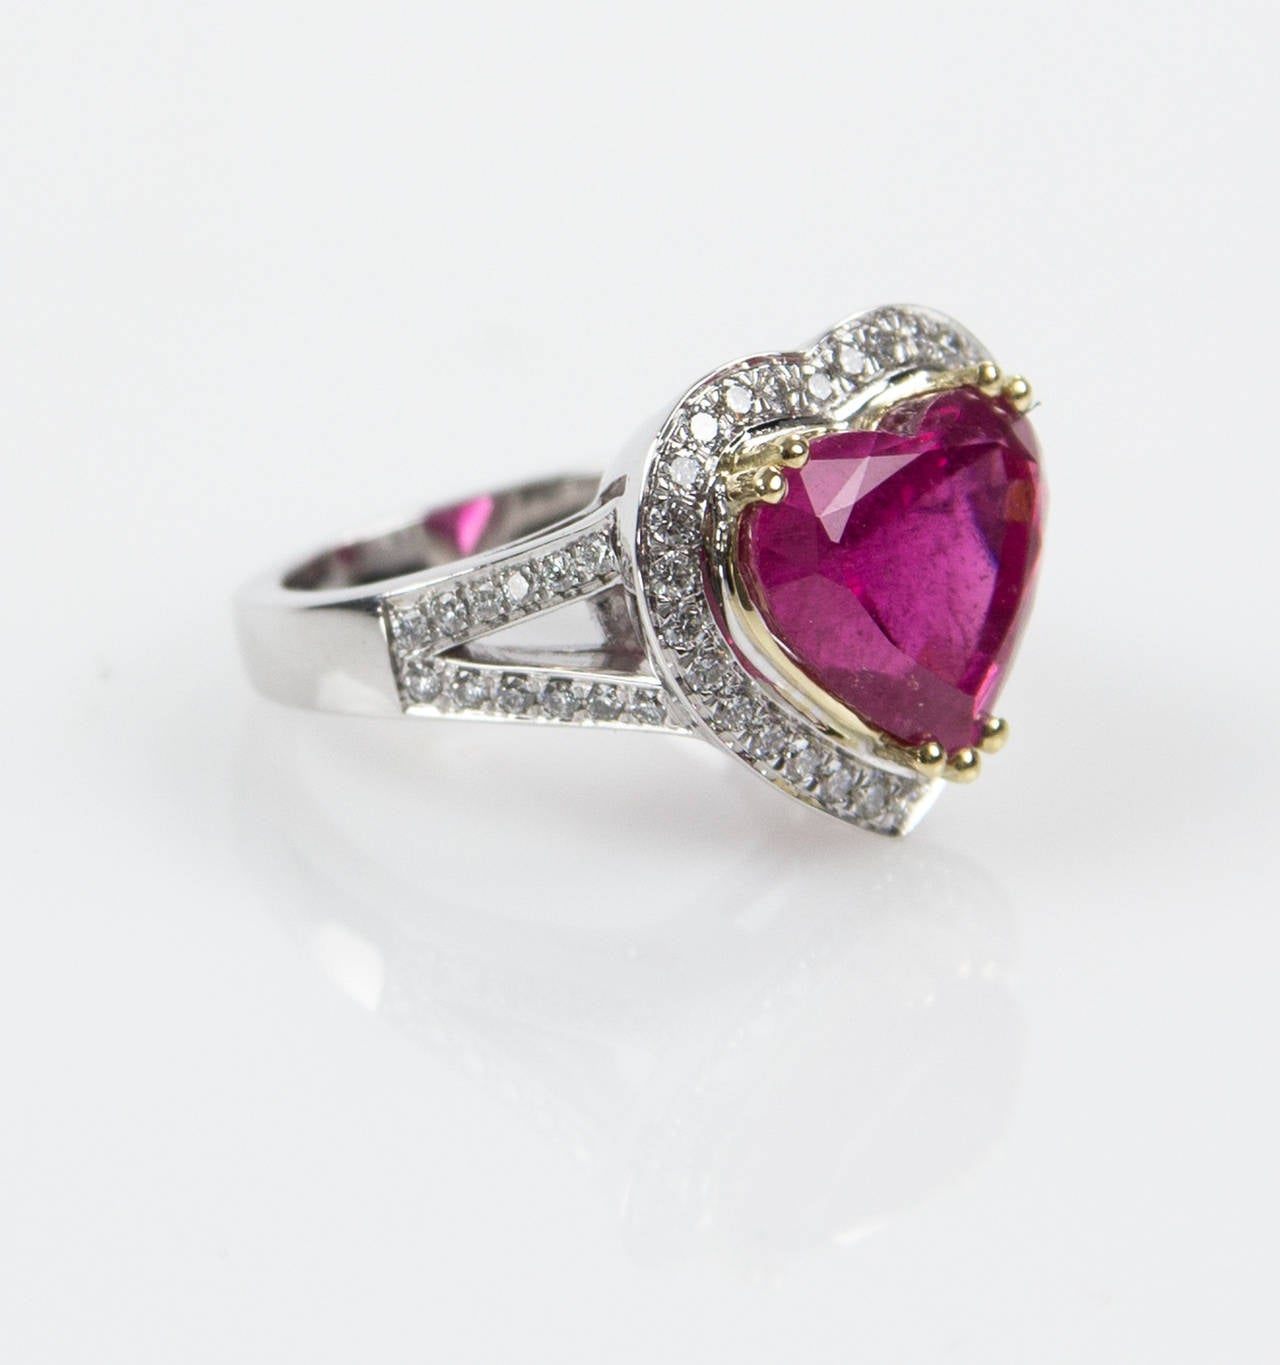 This Runway Rind centers a Beautiful 6.97ct Heart shaped Rubellite surrounded by fifty round brilliant cut diamonds, approx .75tctw; handmade 18k two-tone gold mounting; Ring size: 6.75. Classic and Timeless...For that Special Someone...including